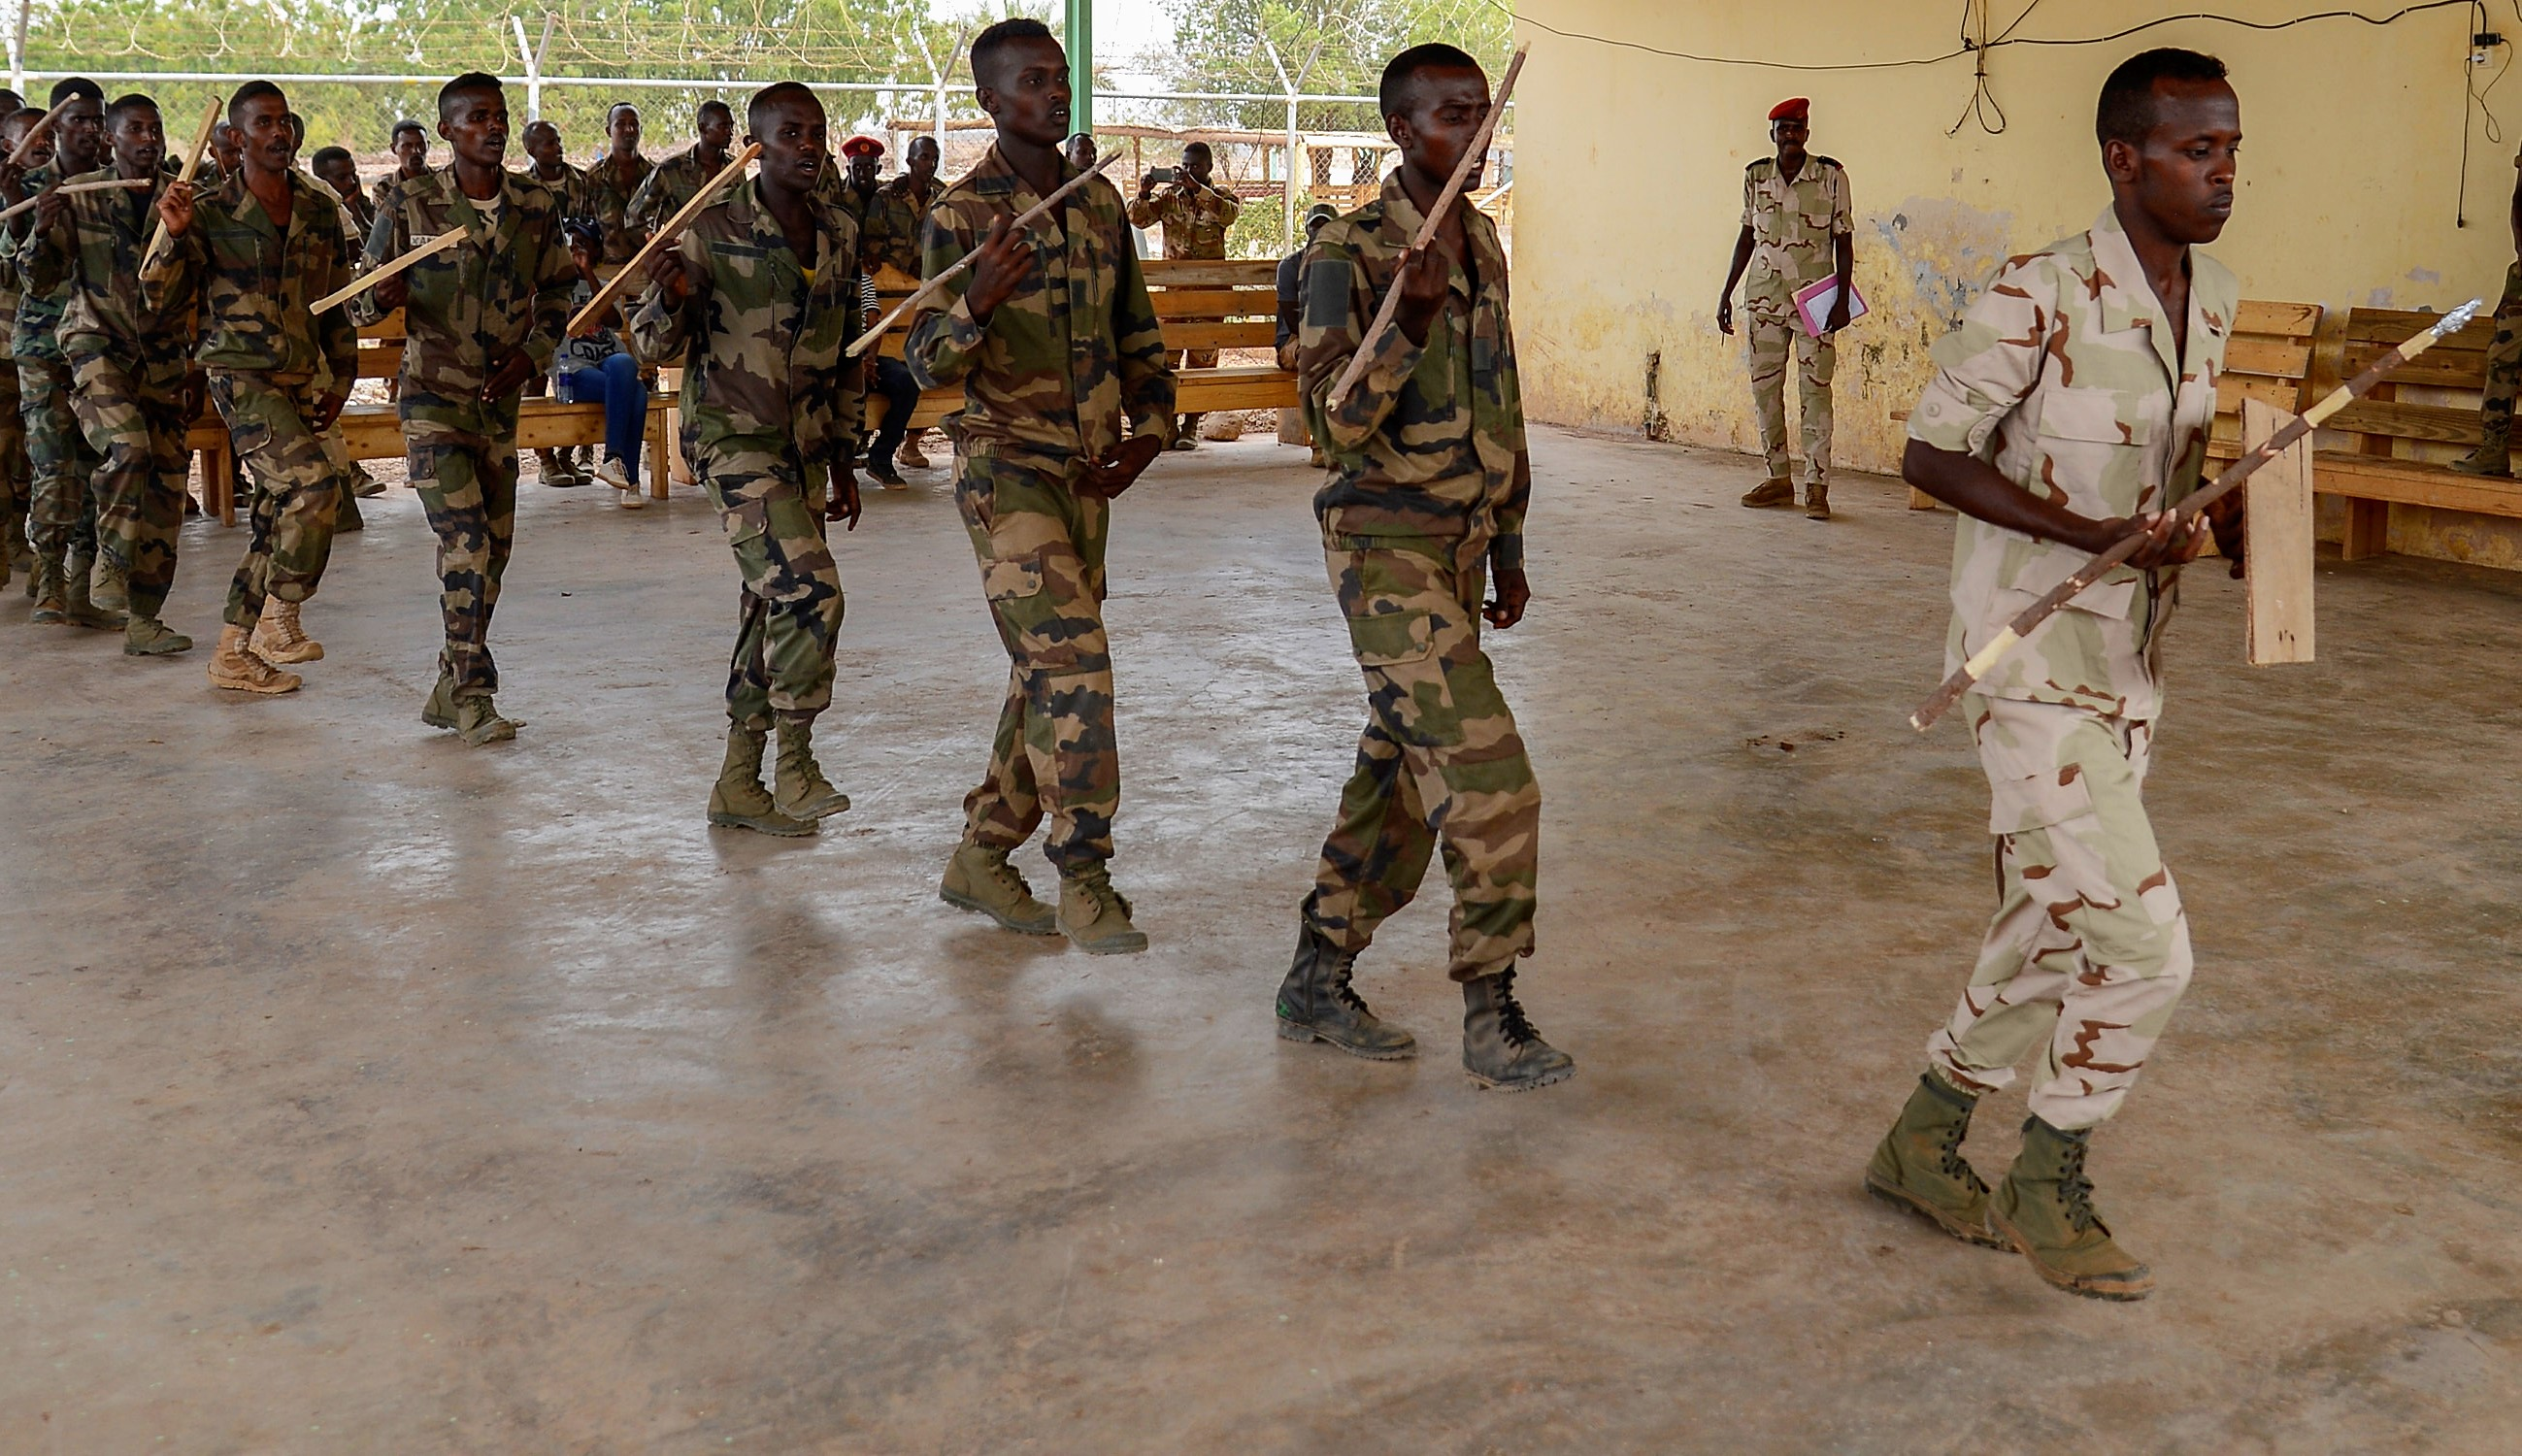 Members of the Djiboutian Army's Rapid Intervention Battalion (RIB) perform a traditional Afar dance during a celebration for new RIB graduates at a training site outside Djibouti City, June 28, 2018. The RIB is a U.S. Army trained unit that was formed to respond to crises and promote regional security and stability in East Africa. (U.S. Navy Photo by Mass Communication Specialist 2nd Class Timothy M. Ahearn)